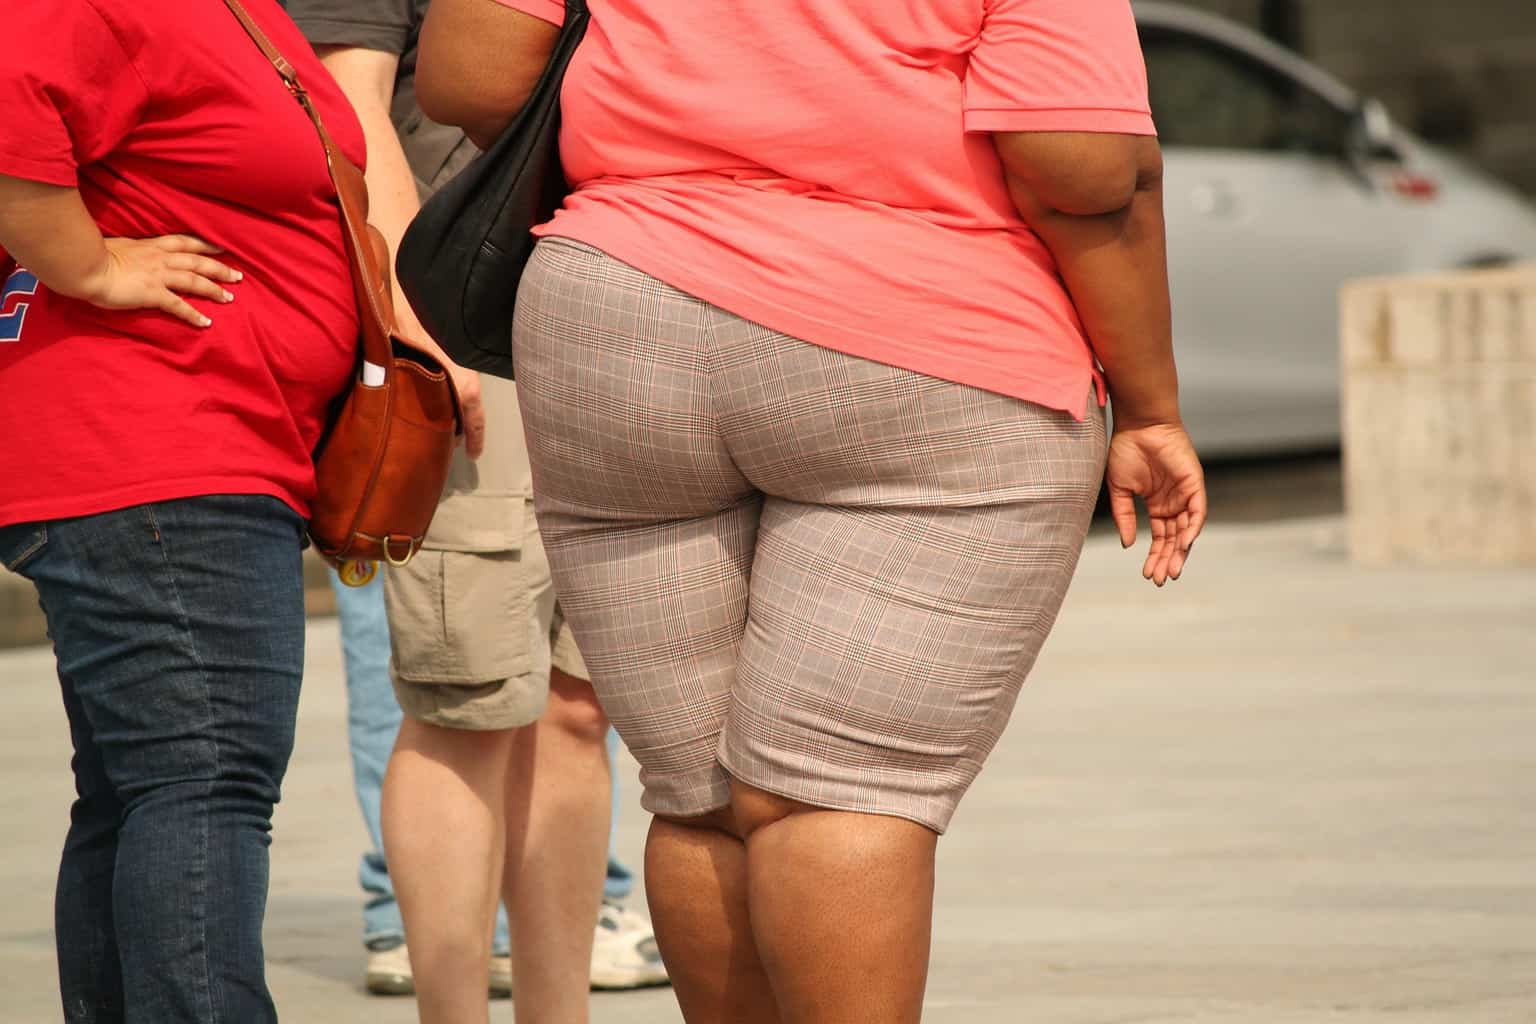 Defining Overweight and Obesity - Causes, Consequences, and Tips